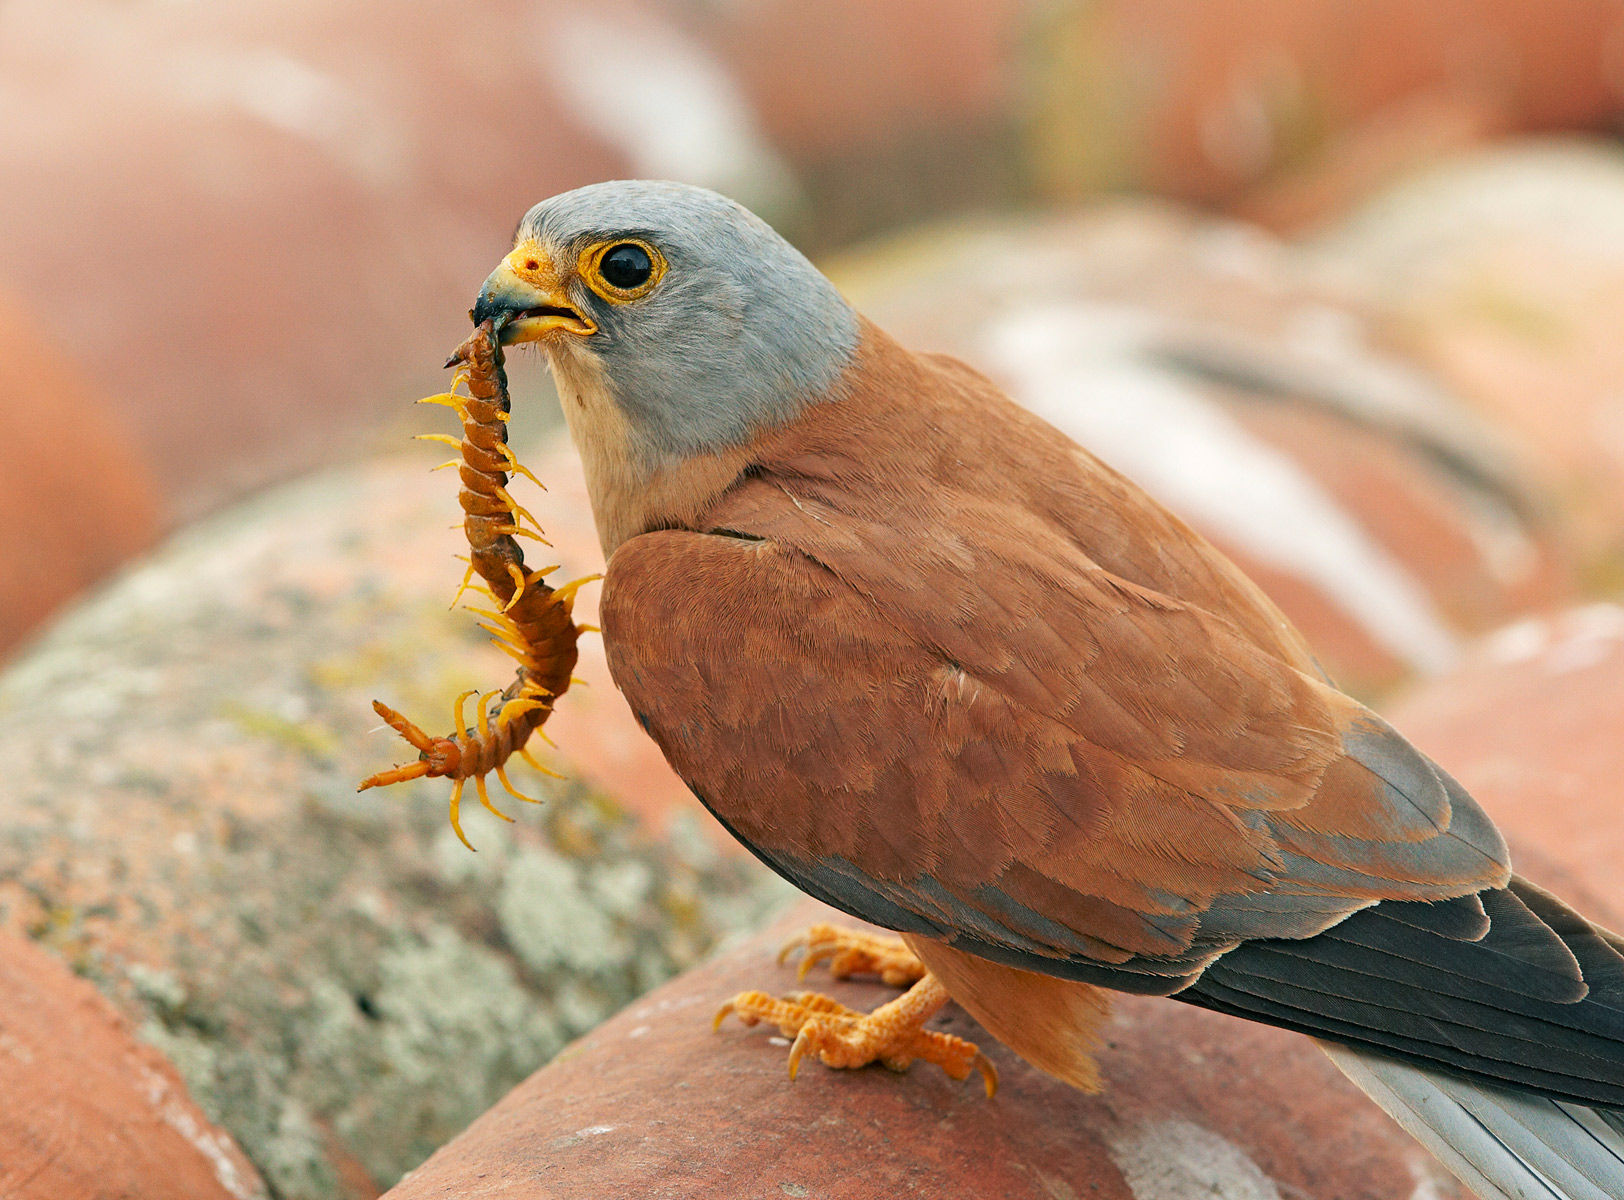 lesser kestrel and centipede